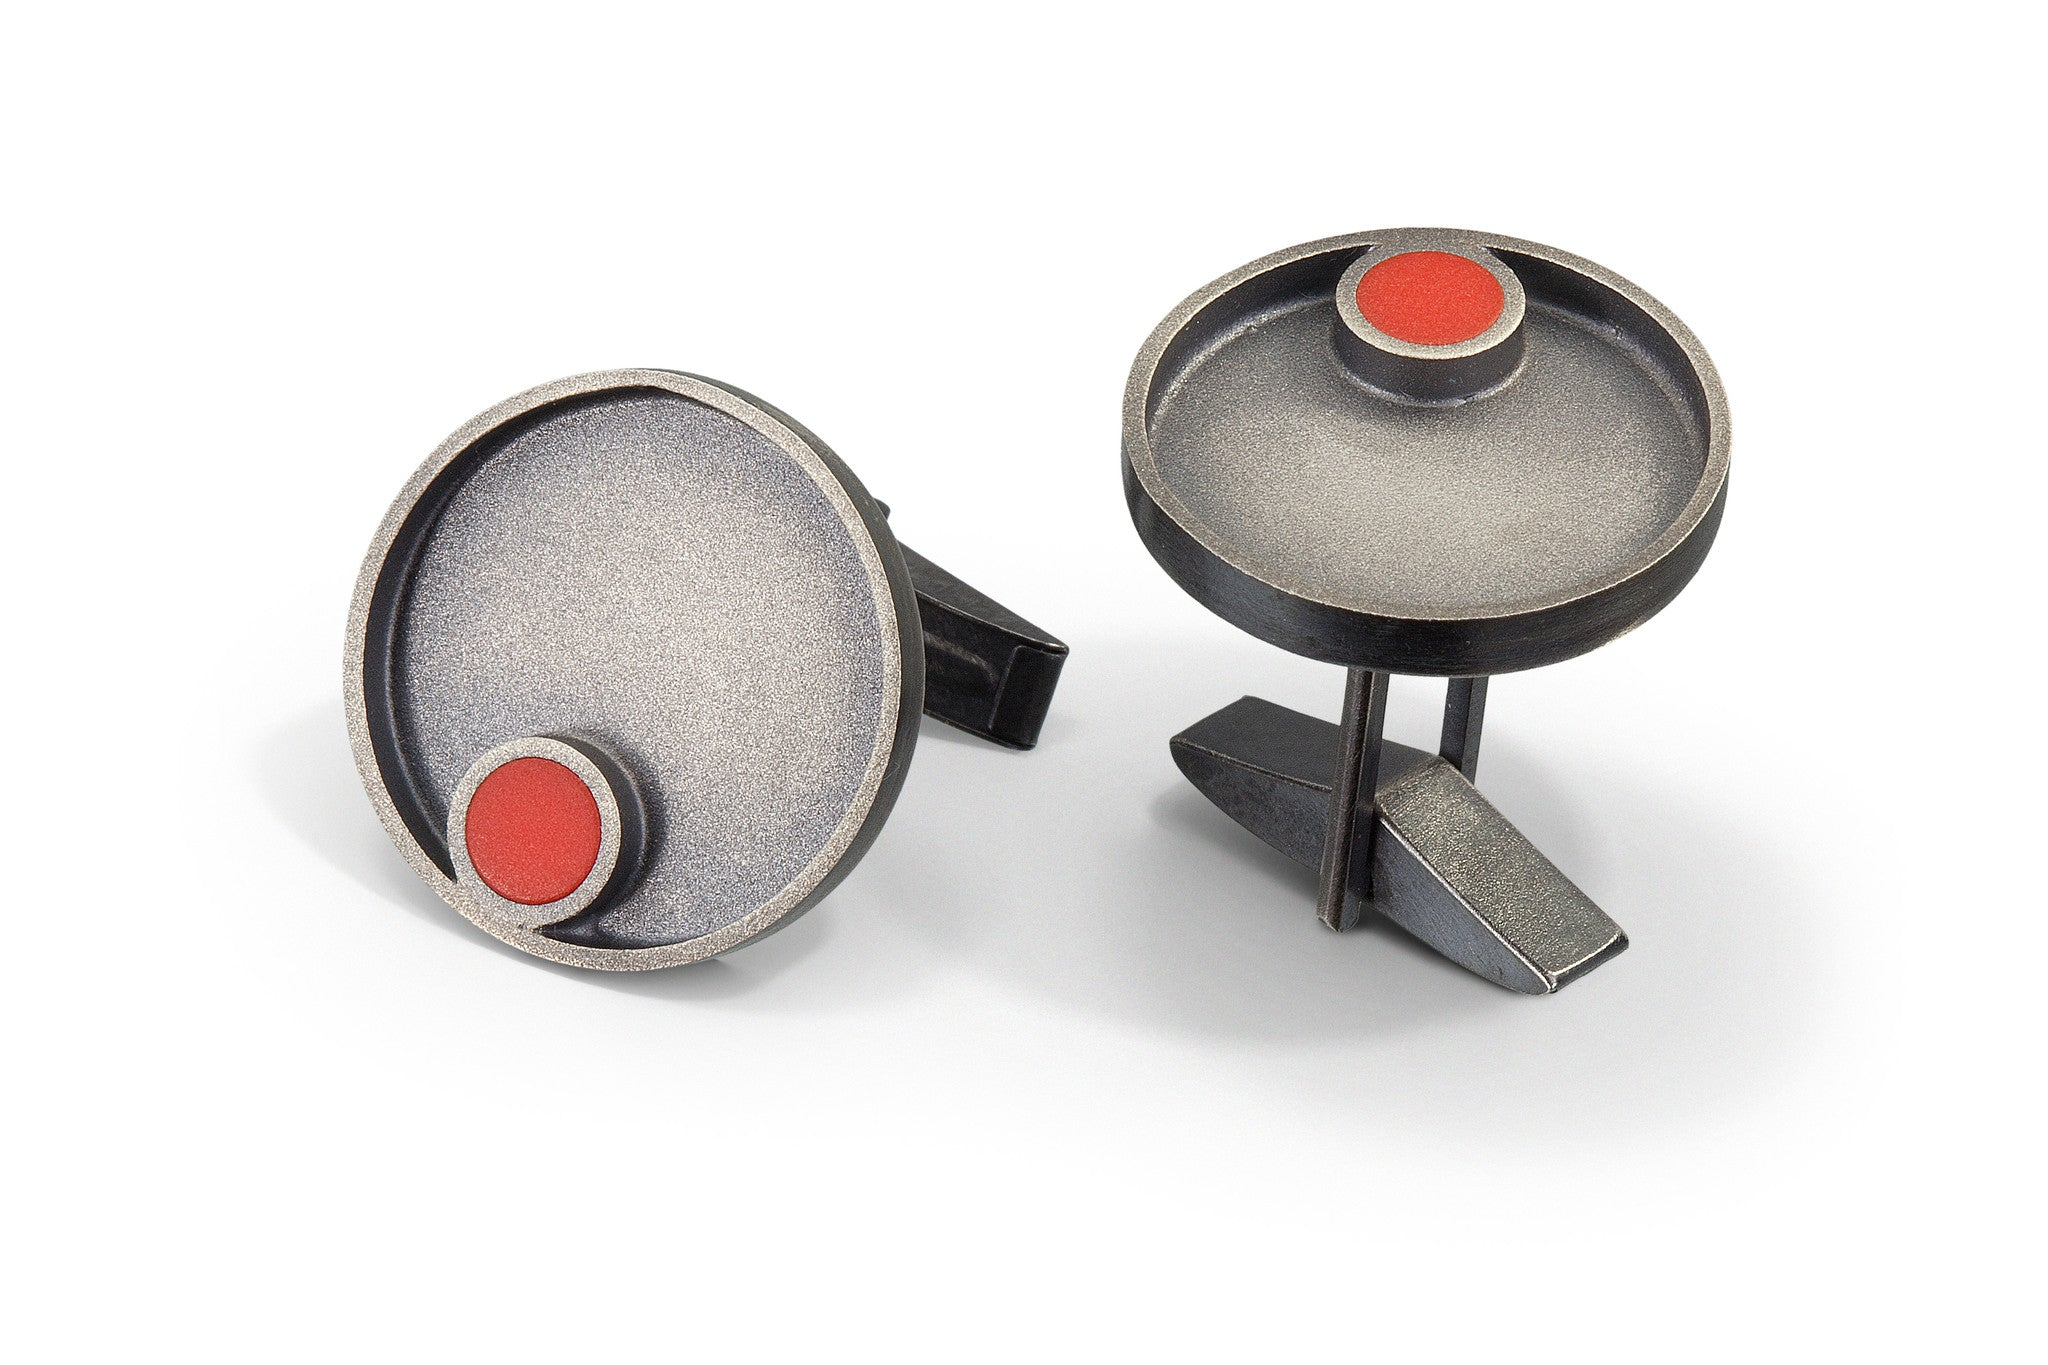 Hand fabricated sterling silver round modern cuff links with small round red LEGO piece with patina finish